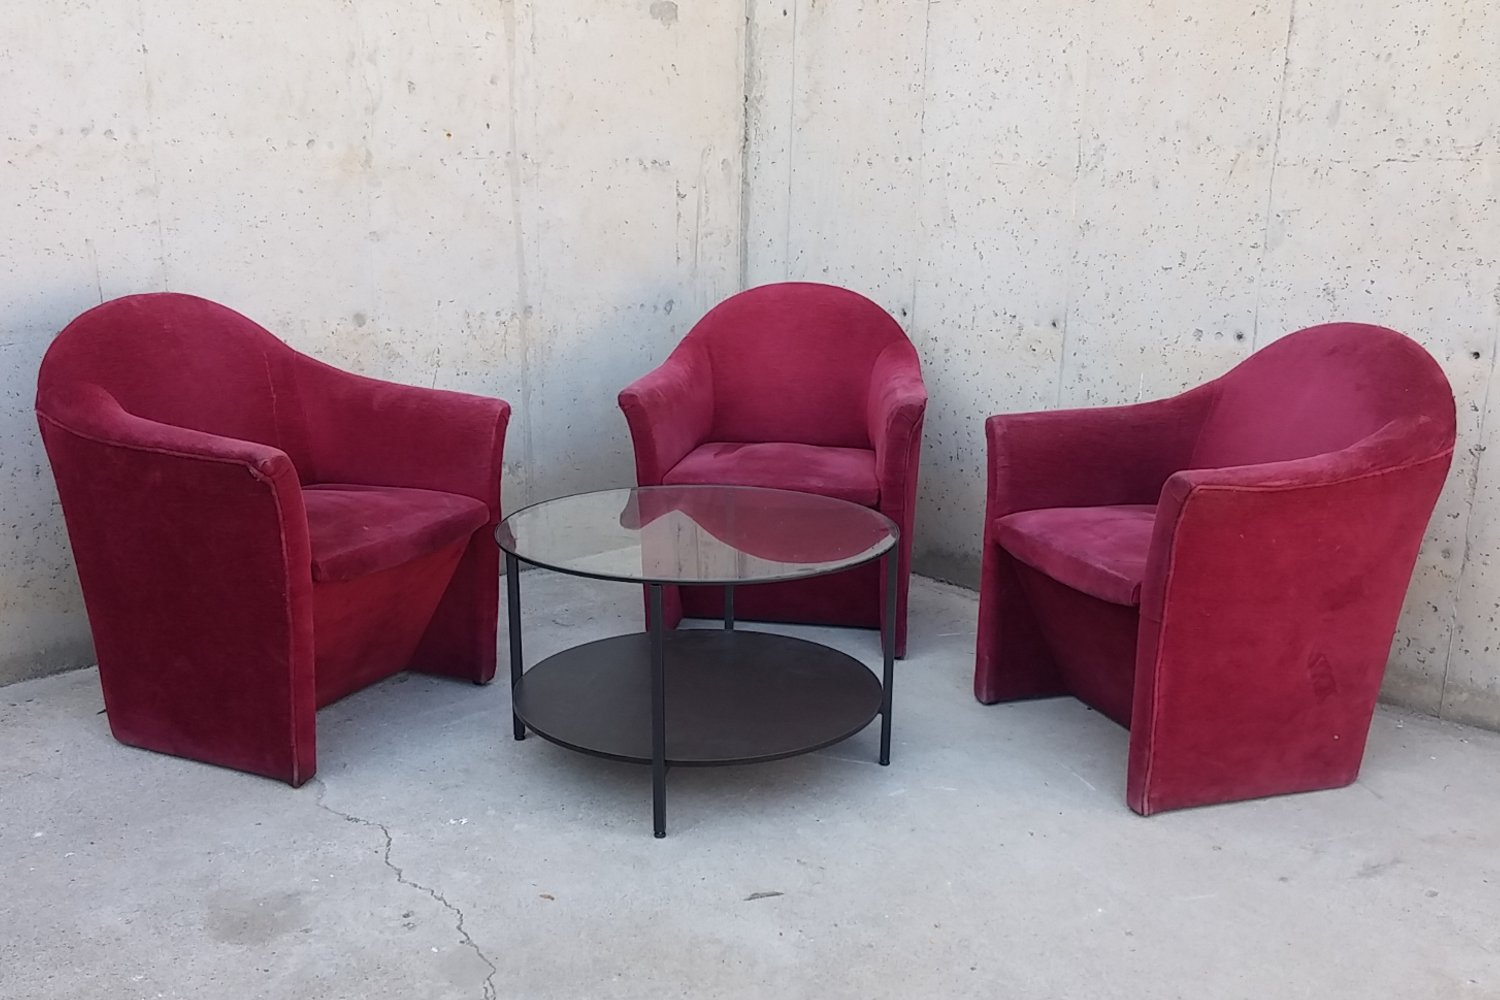 Sillas y sillones ikea simple cheslong baratos sillones for Sillones cheslong baratos